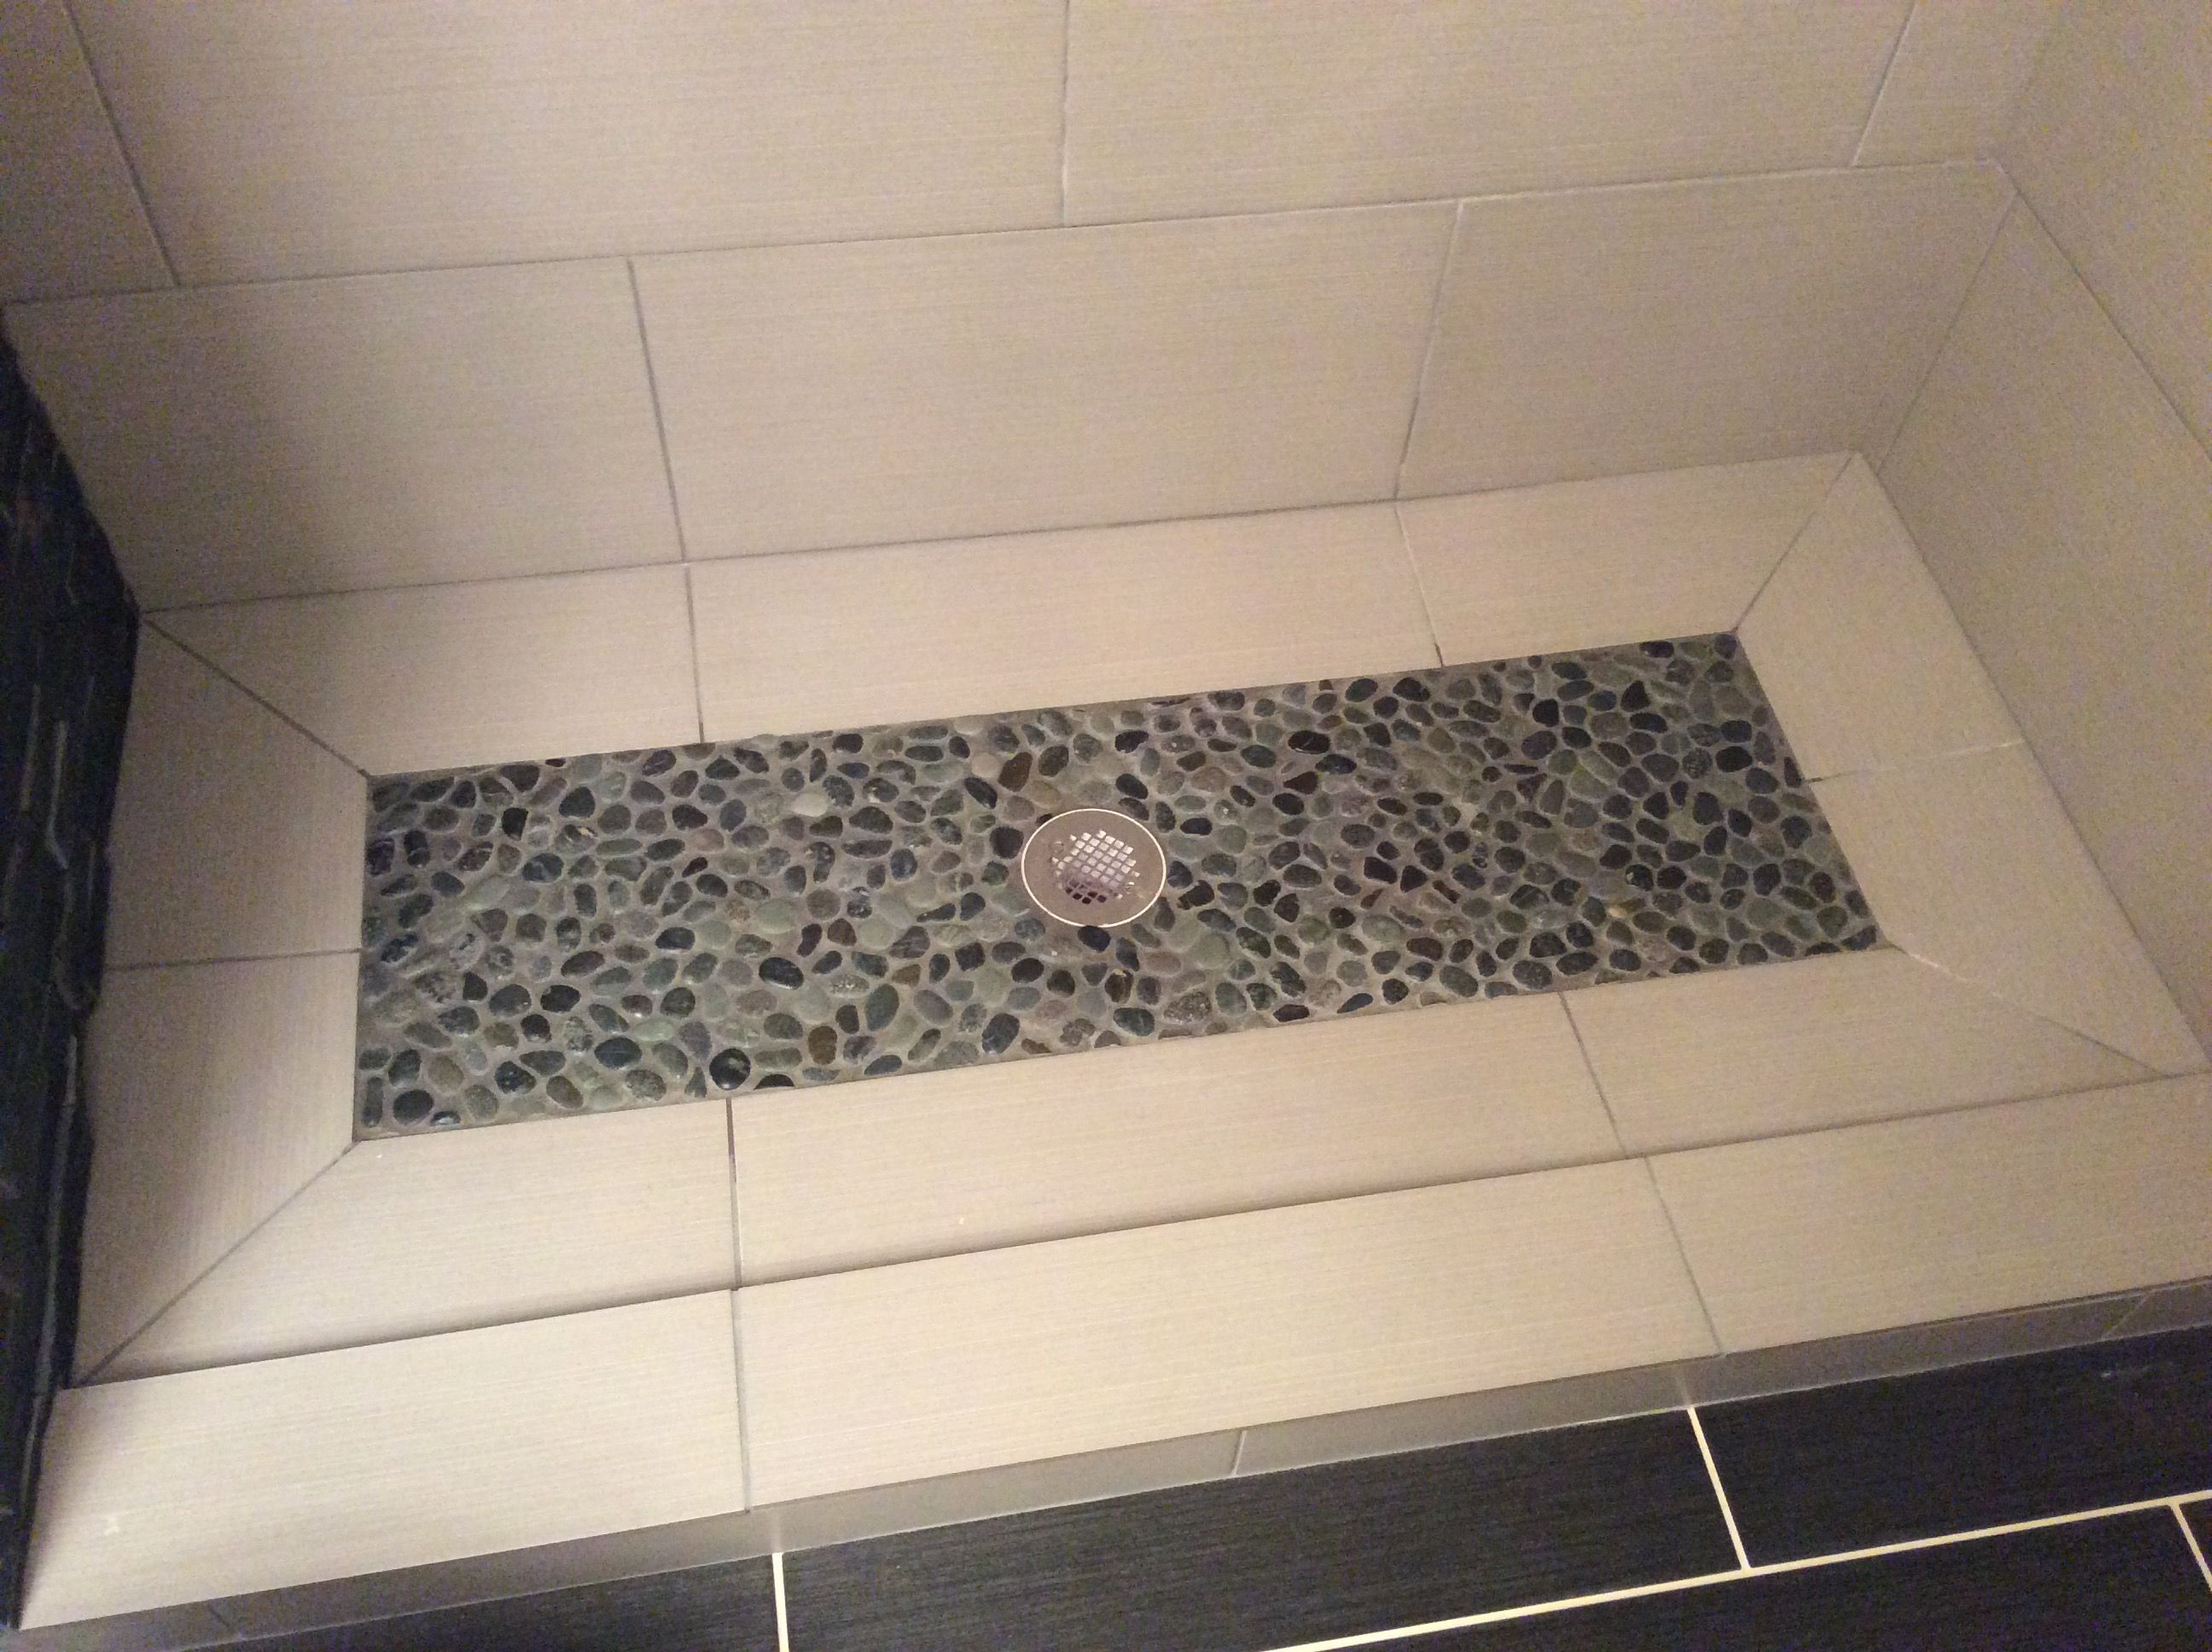 We Used Black Stone Effect Tile And Large White Tile For Shower